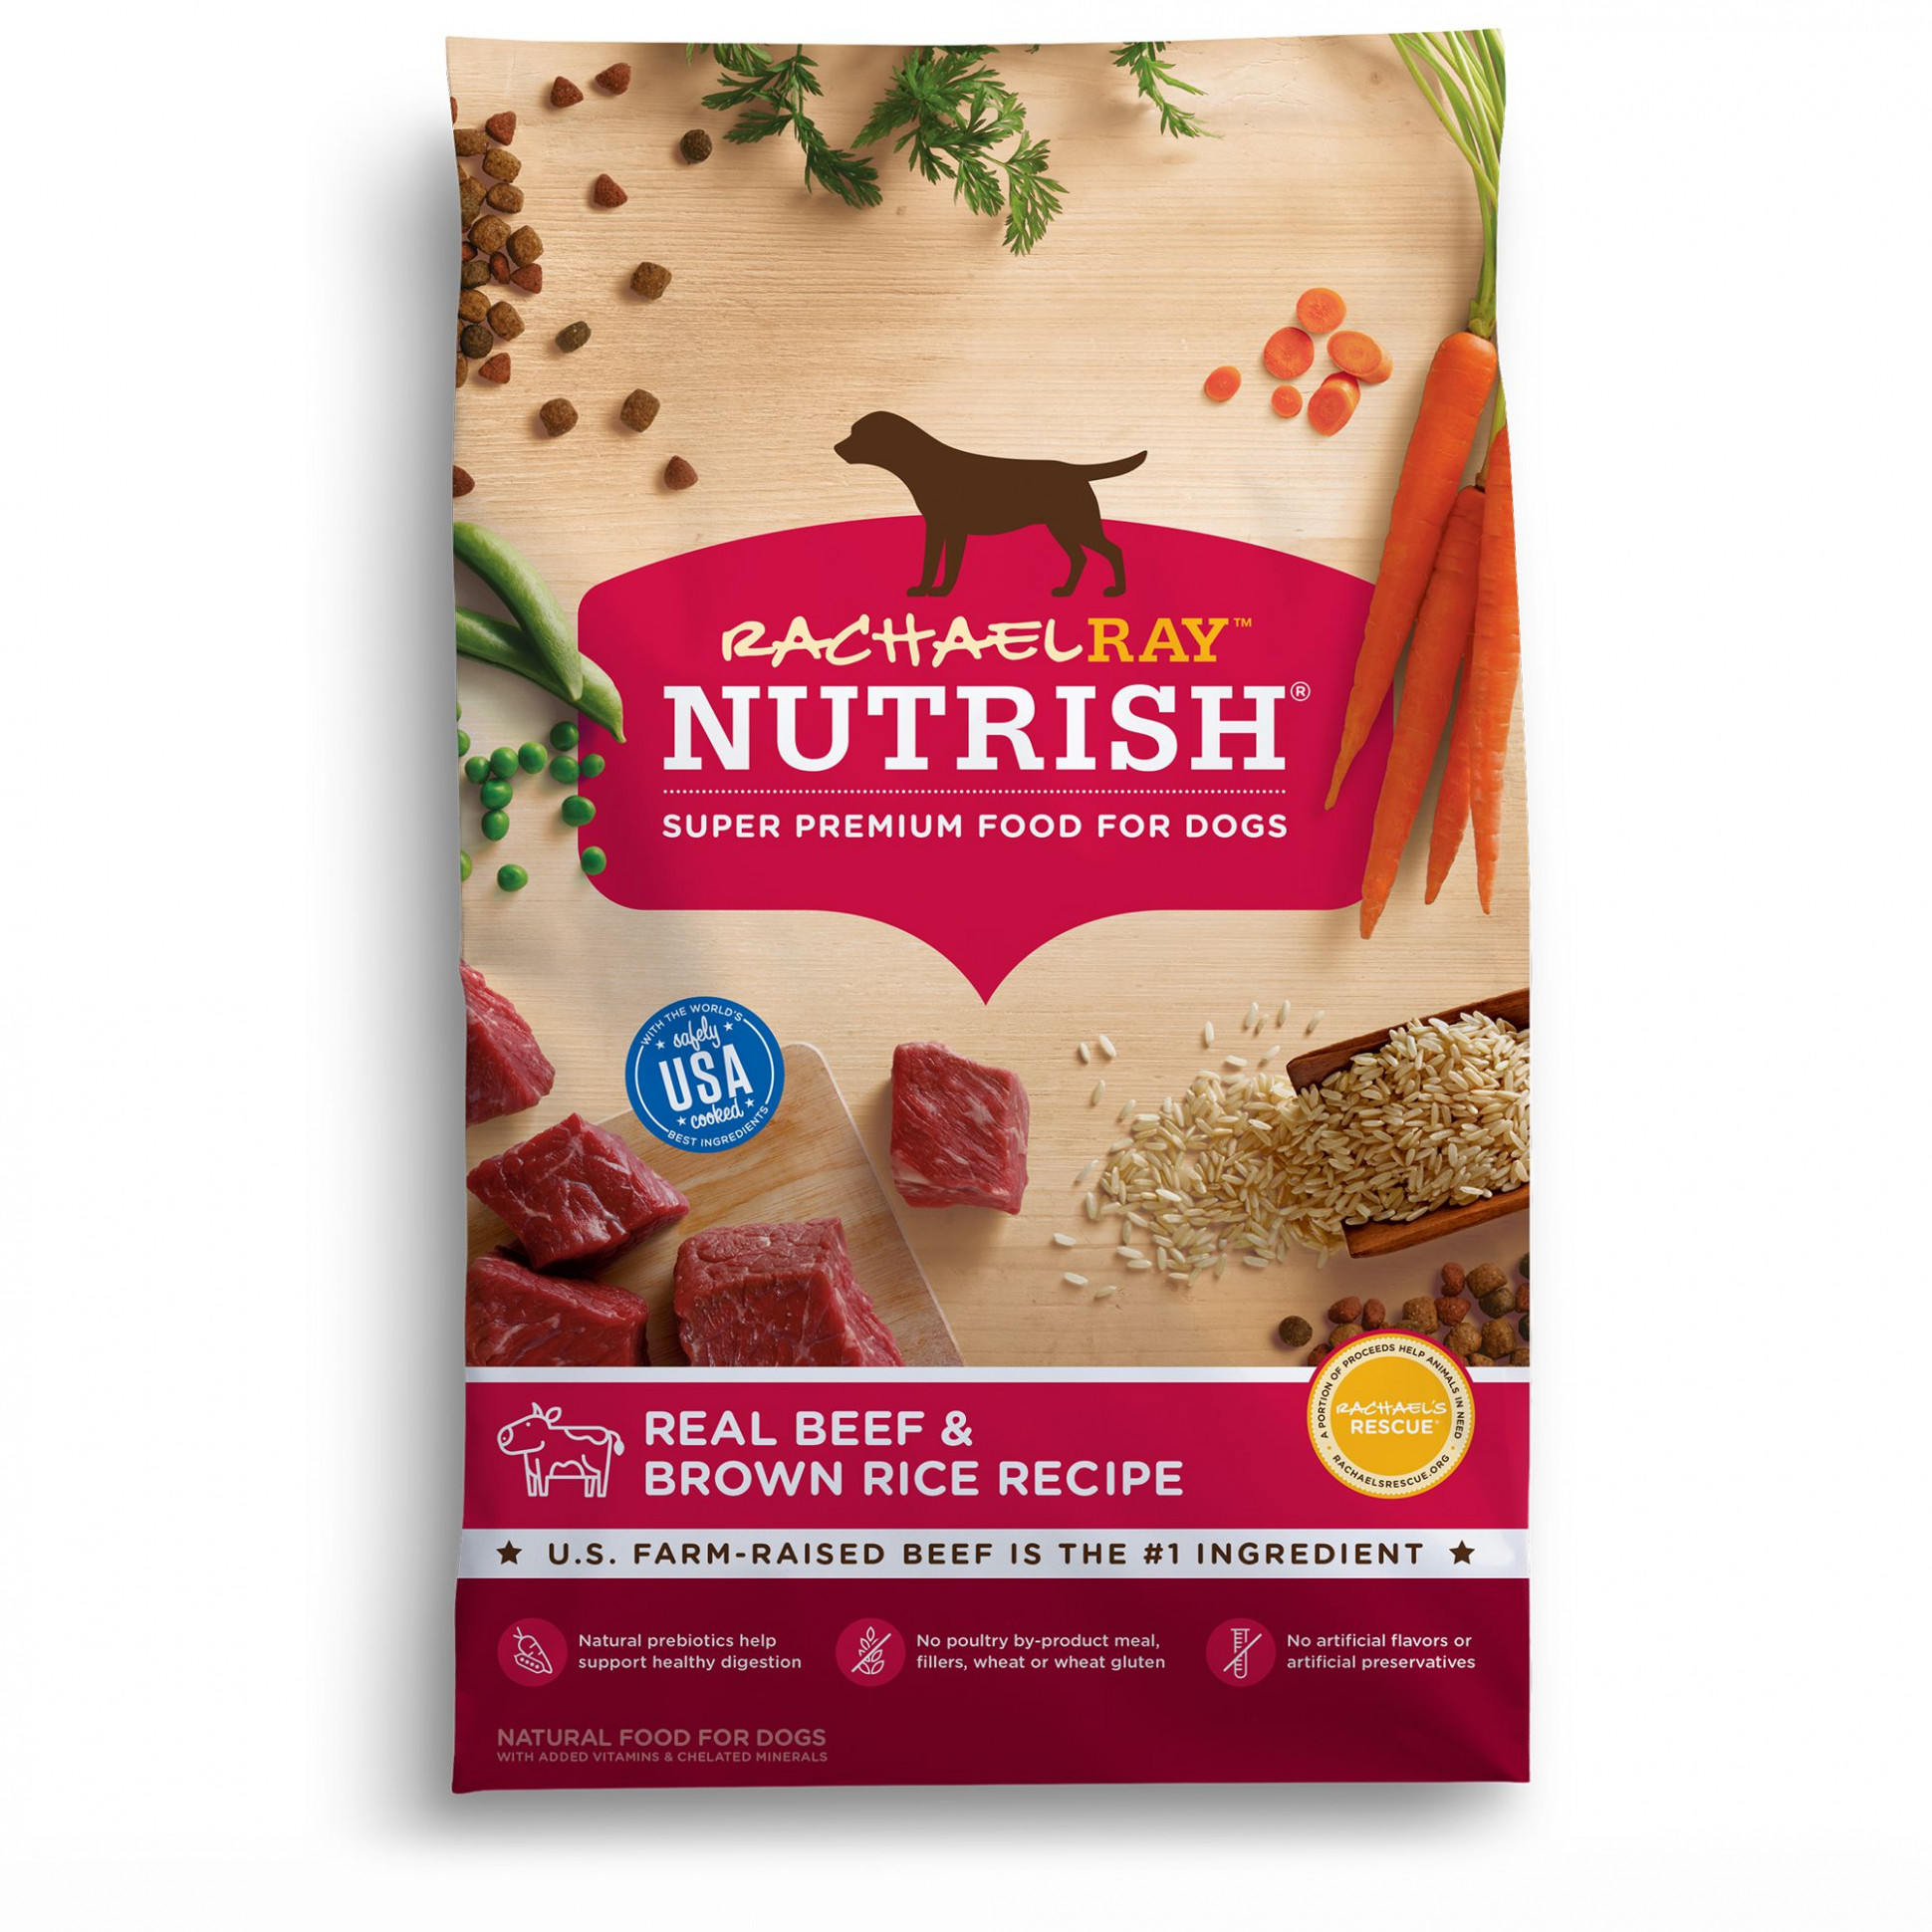 Rachael Ray™ Nutrish® Dog Food - Natural, Beef & Brown Rice Recipe - recipes for dog food